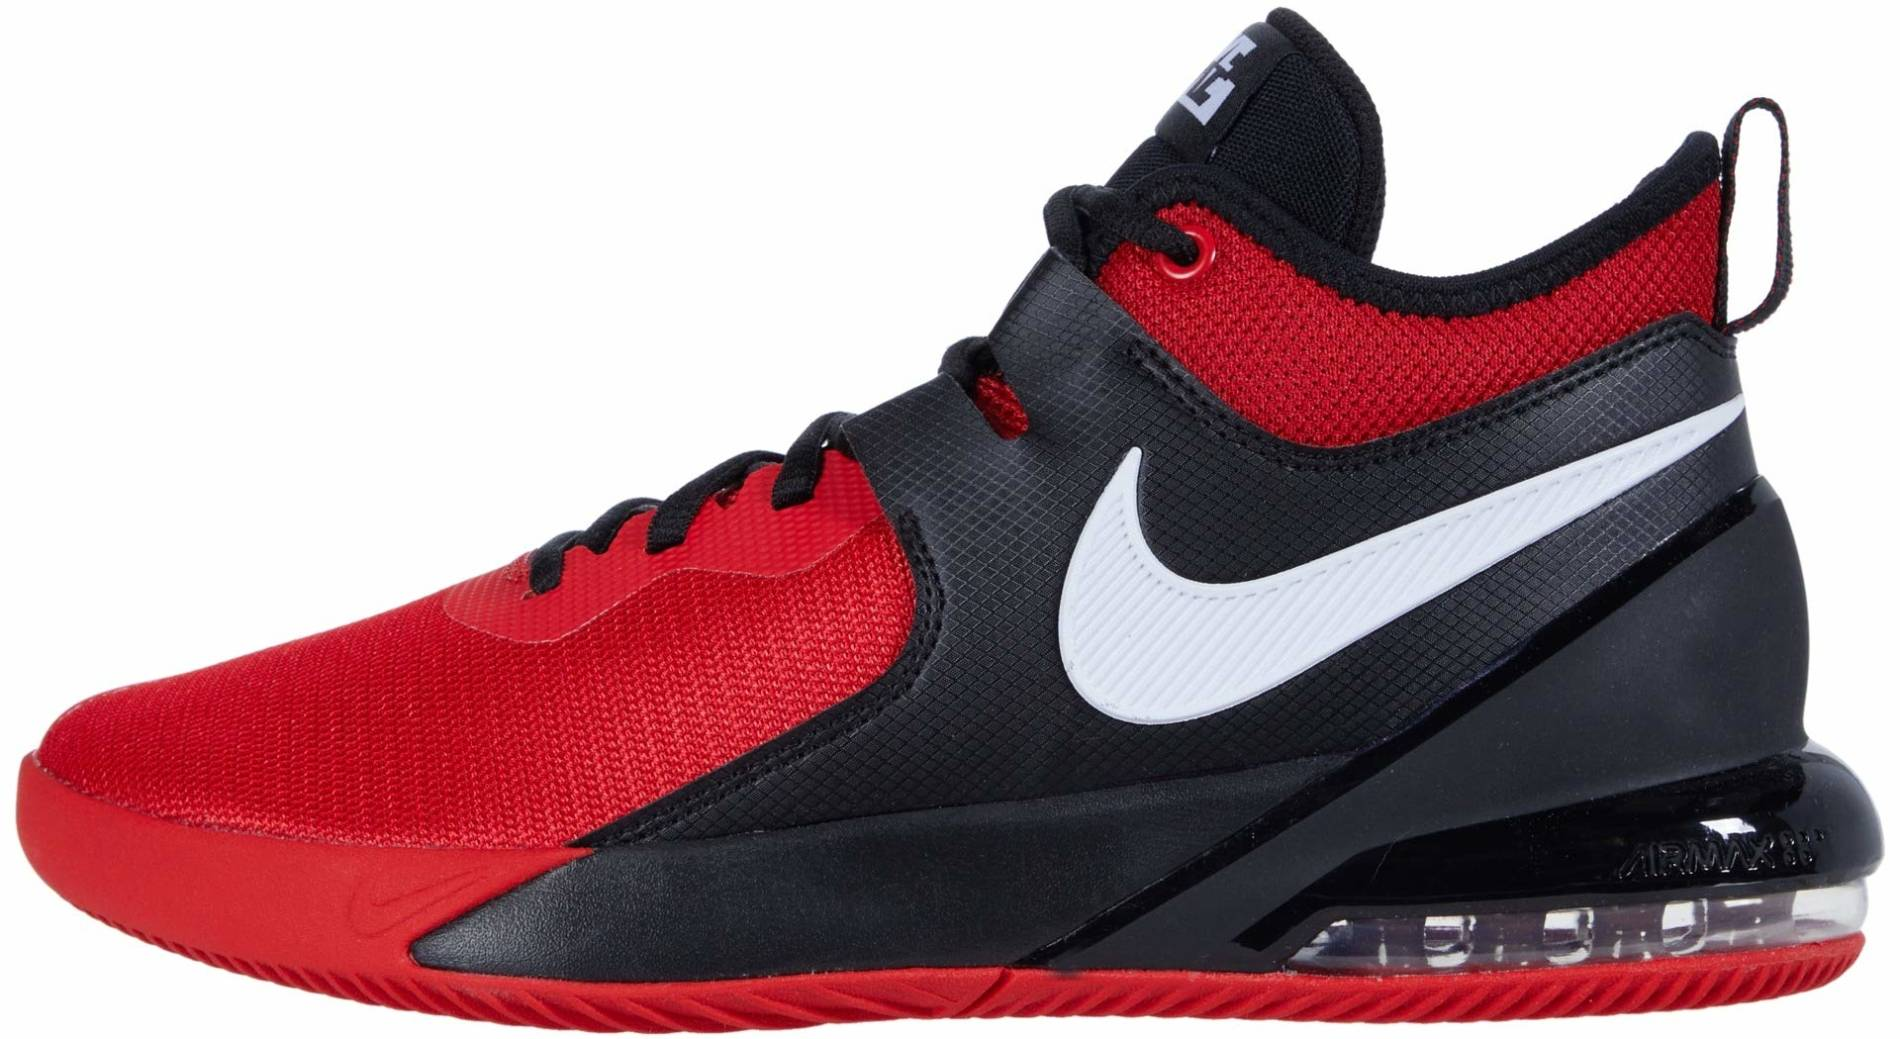 Save 36% on Red Basketball Shoes (107